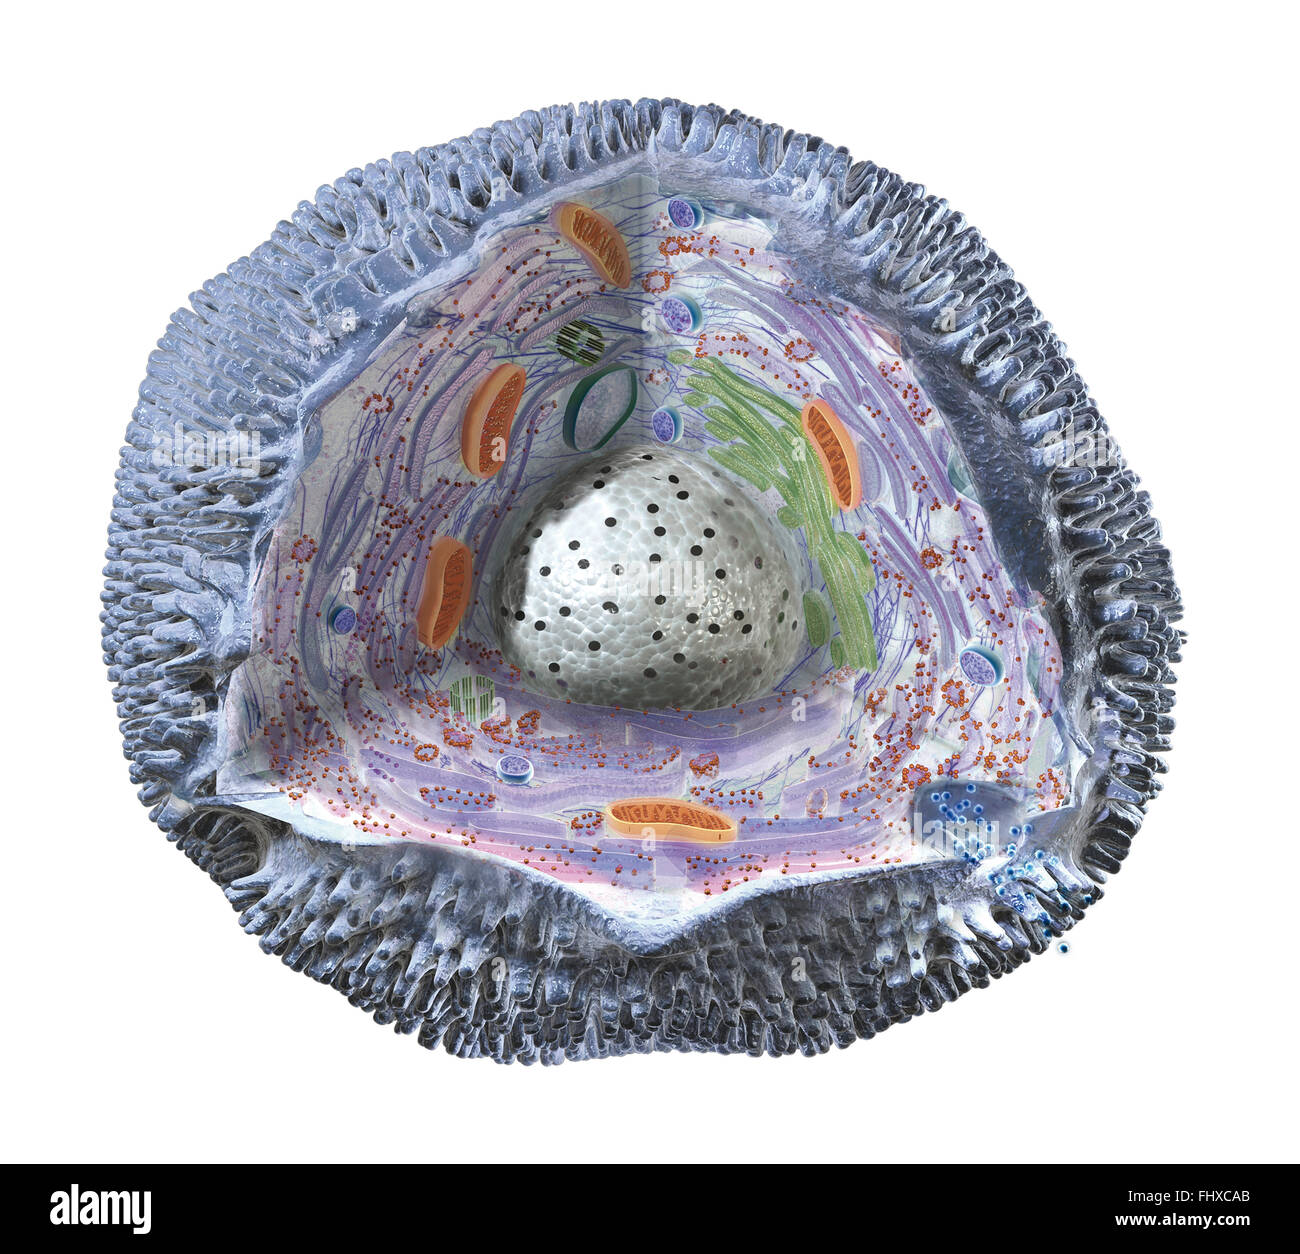 cell nucleus cross section stock photos & cell nucleus cross, Sphenoid